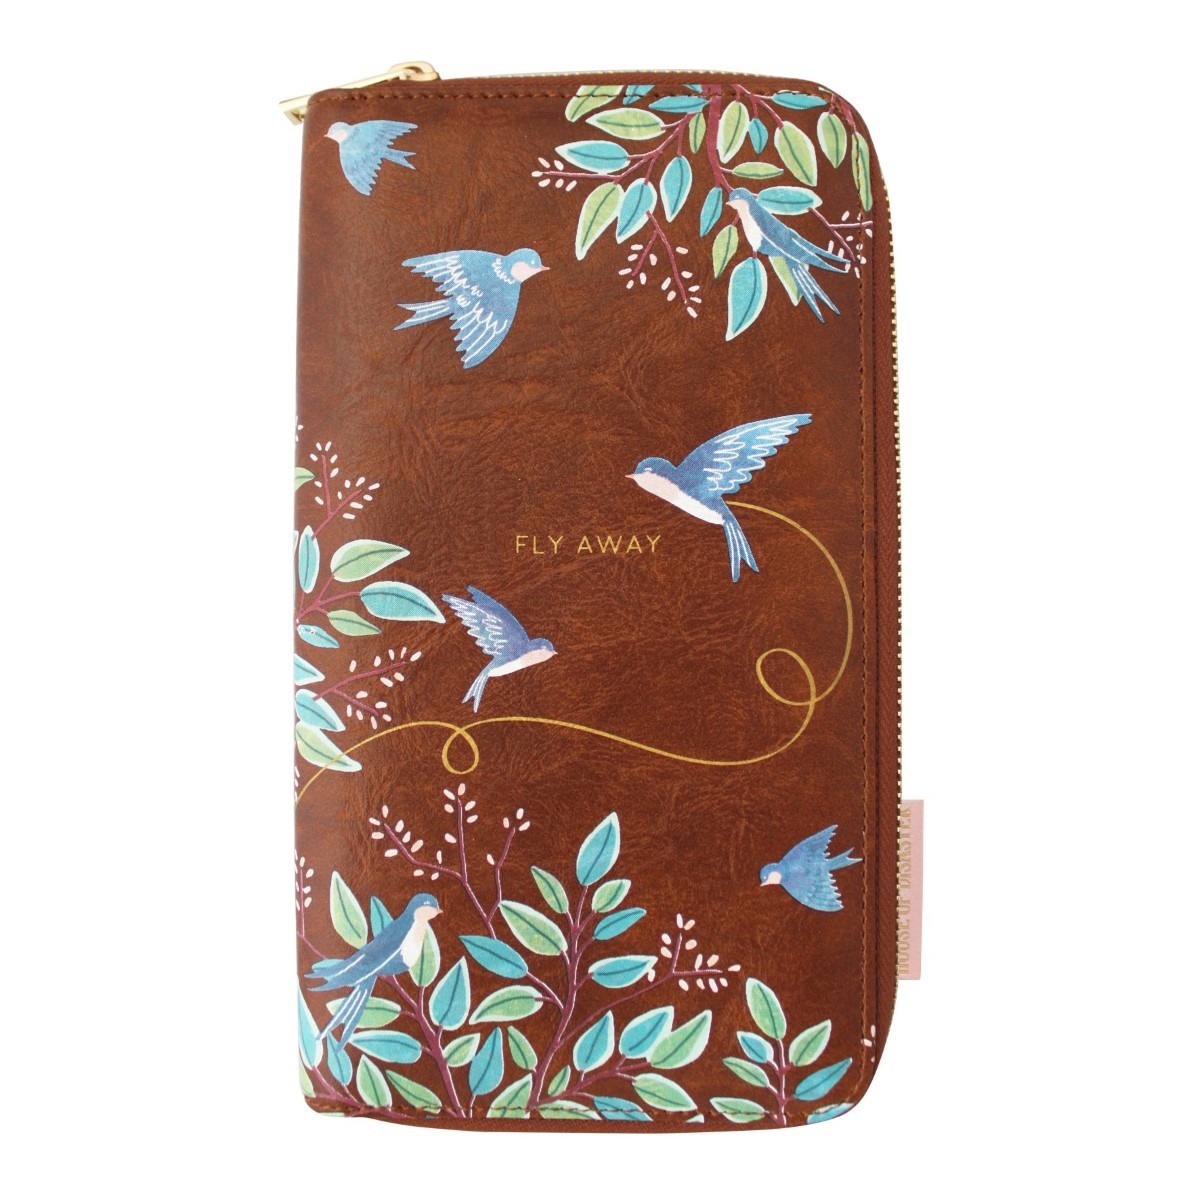 Disaster suport mare maro de acte Secret Garden Bird Travel Wallet